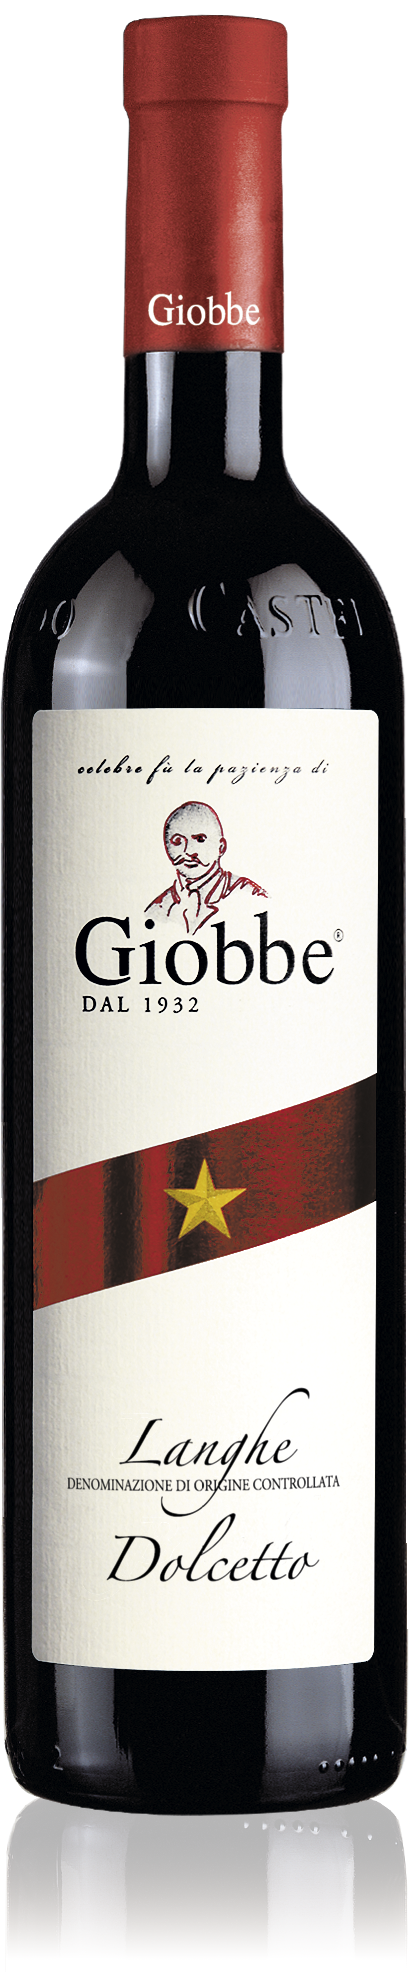 Giobbe - Langhe Dolcetto